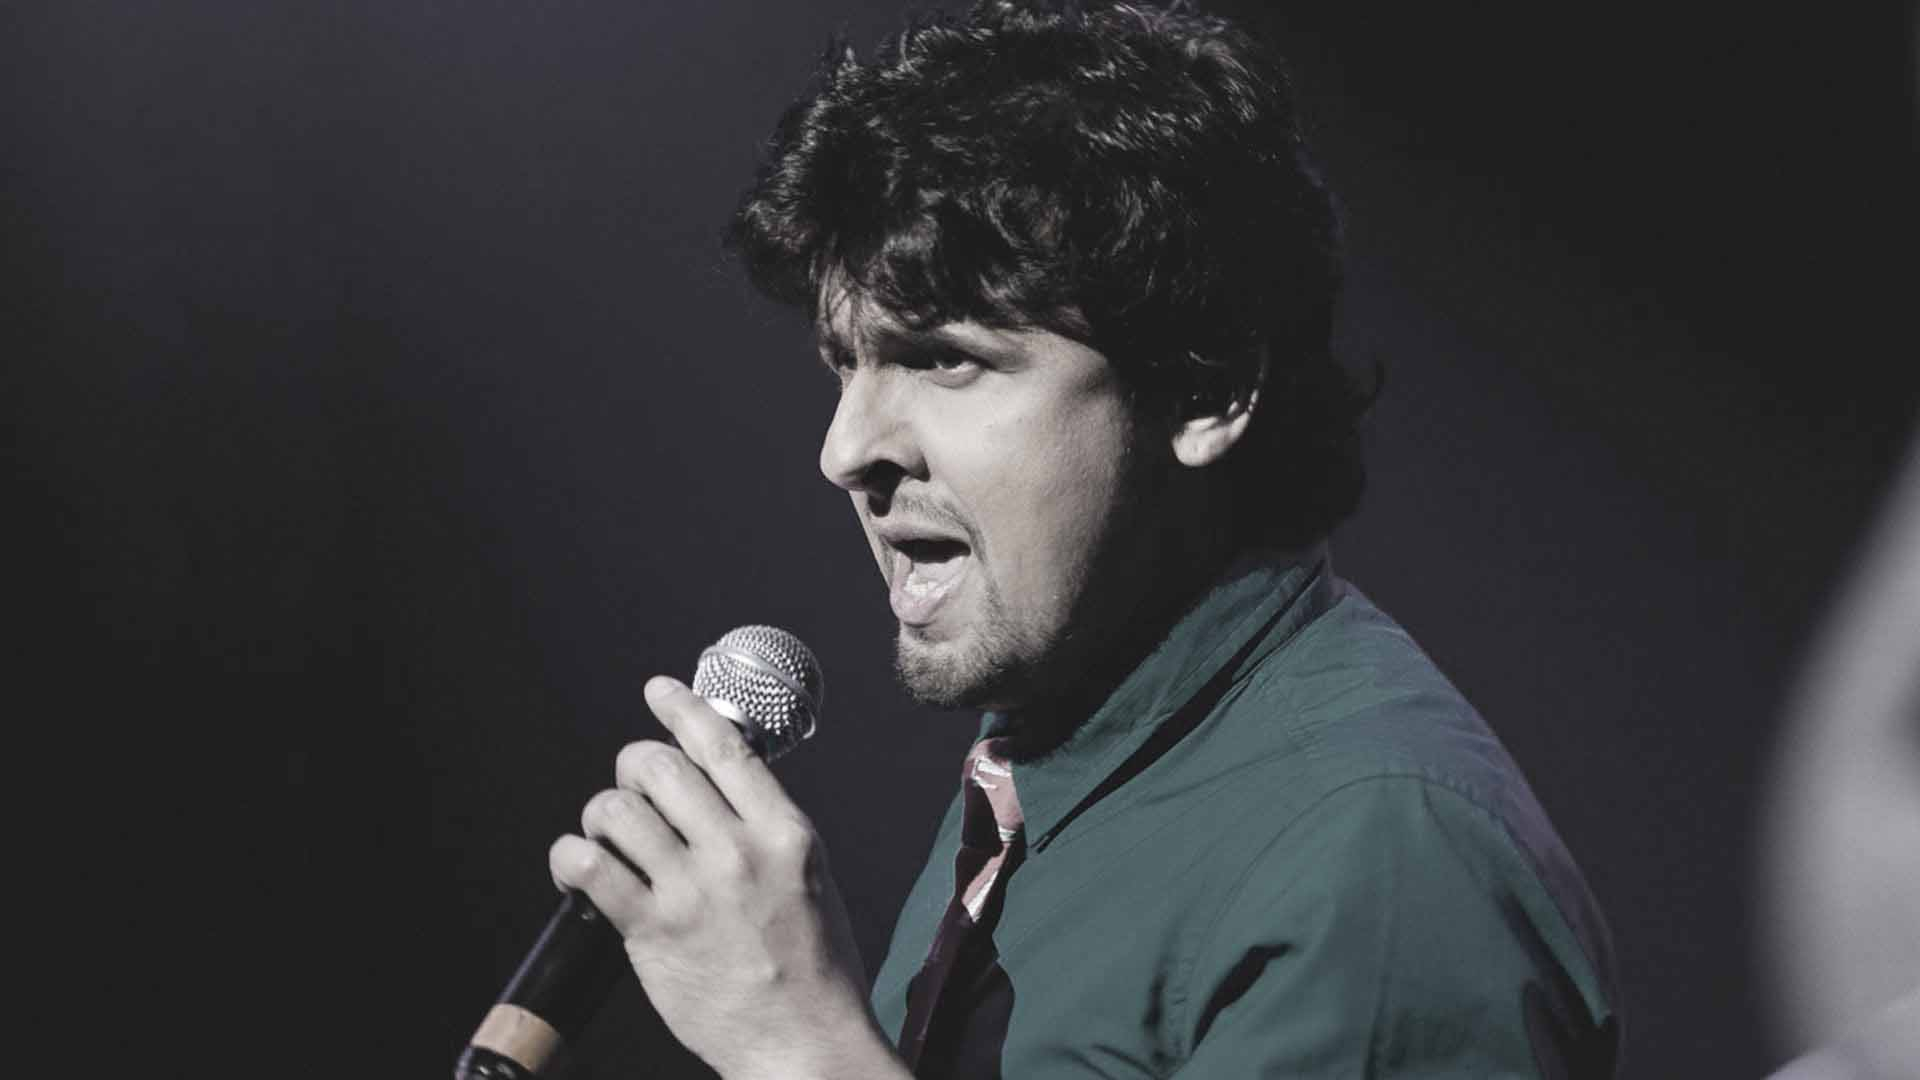 sonu nigam wallpapers images photos pictures backgrounds